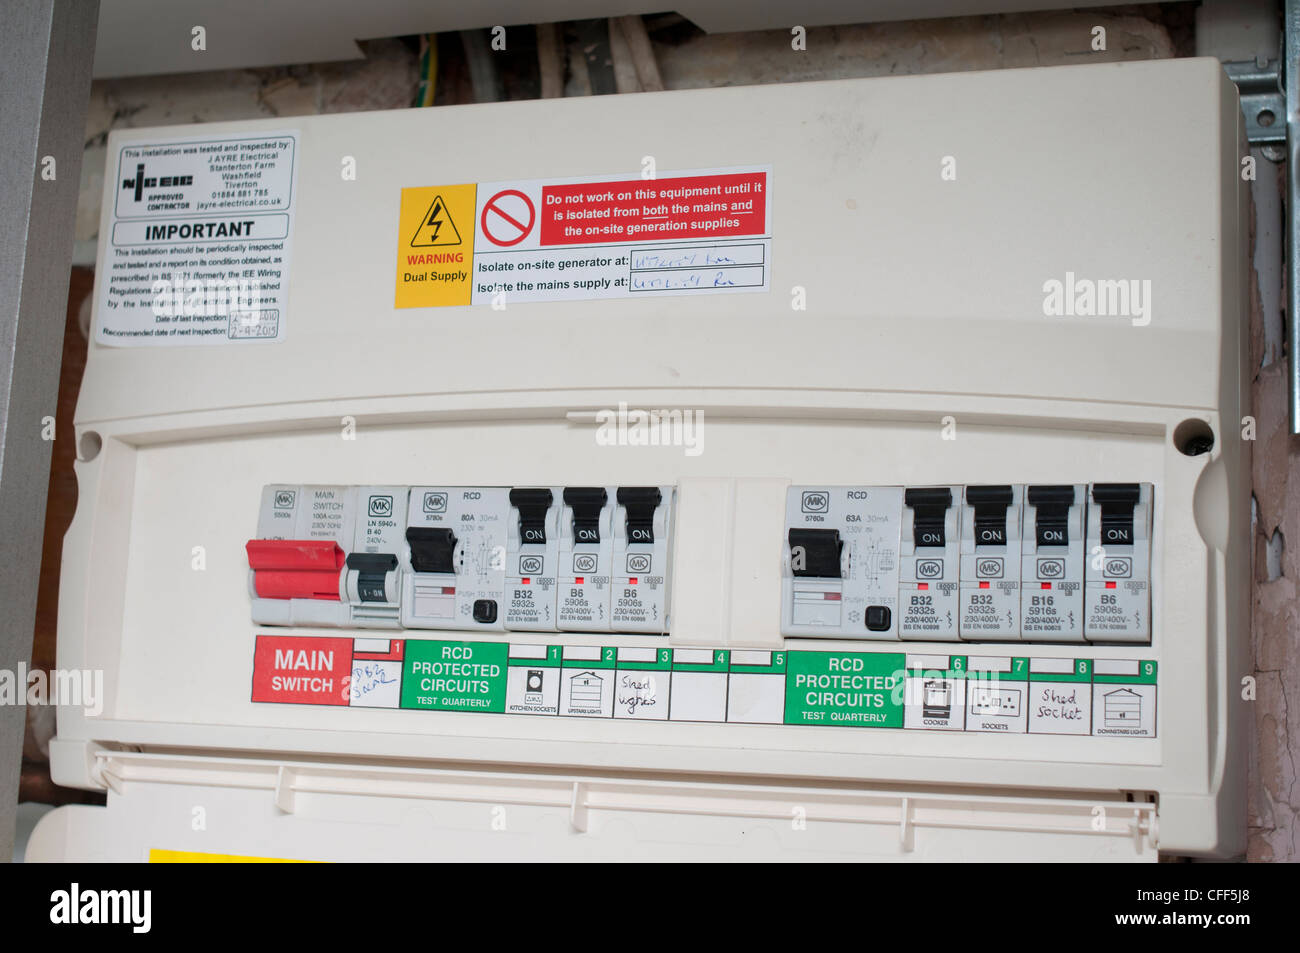 domestic fuse box CFF5J8 fuse box in house how to change a fuse in a breaker box \u2022 wiring Fuses and Circuit Breakers at edmiracle.co